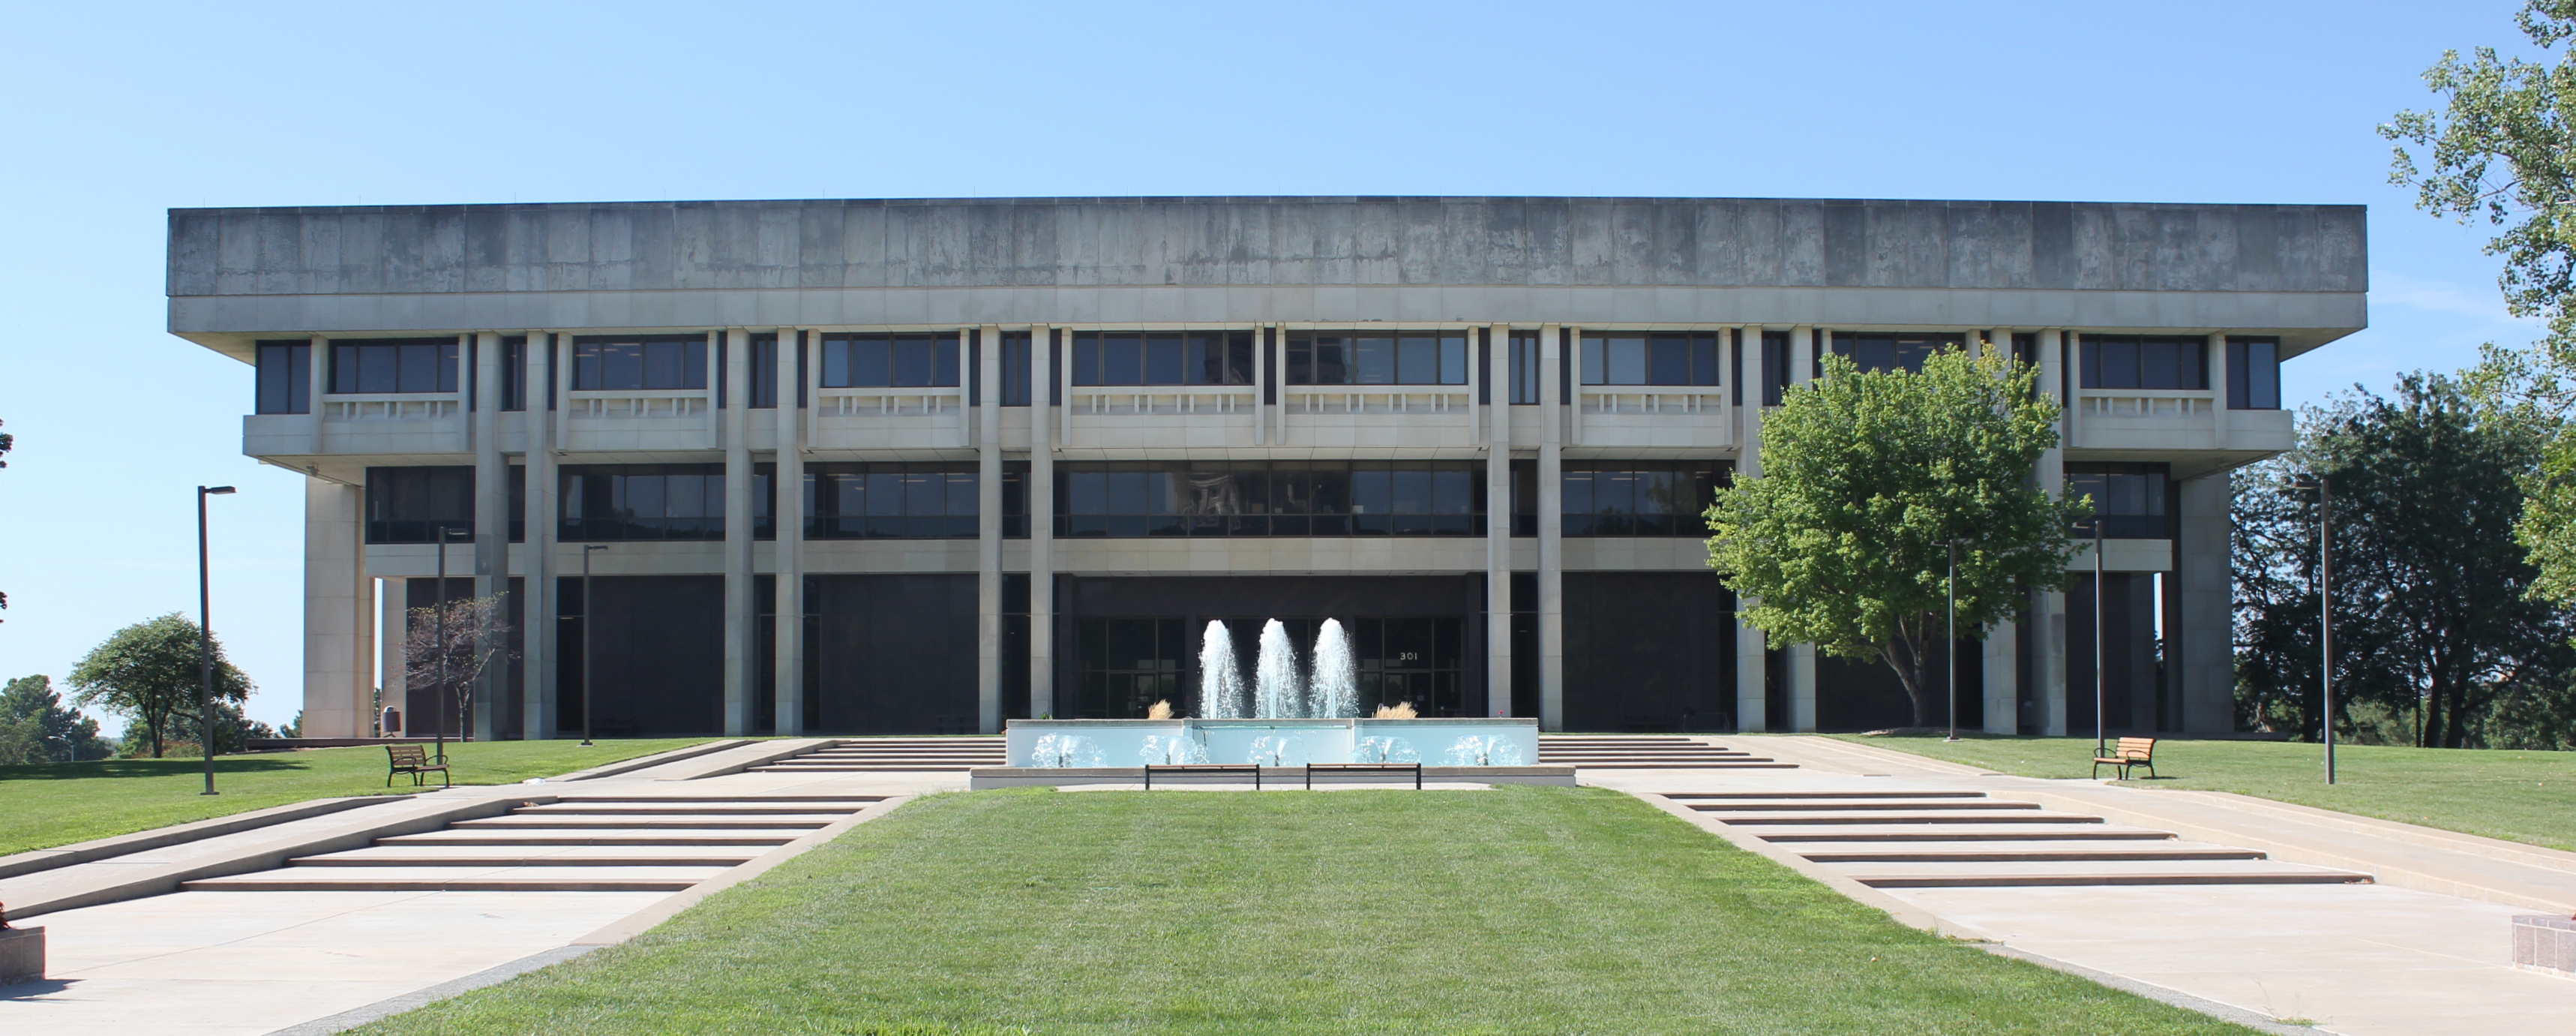 The Kansas Judicial Center, which houses the Supreme Court. (Photo by Stephen Koranda)